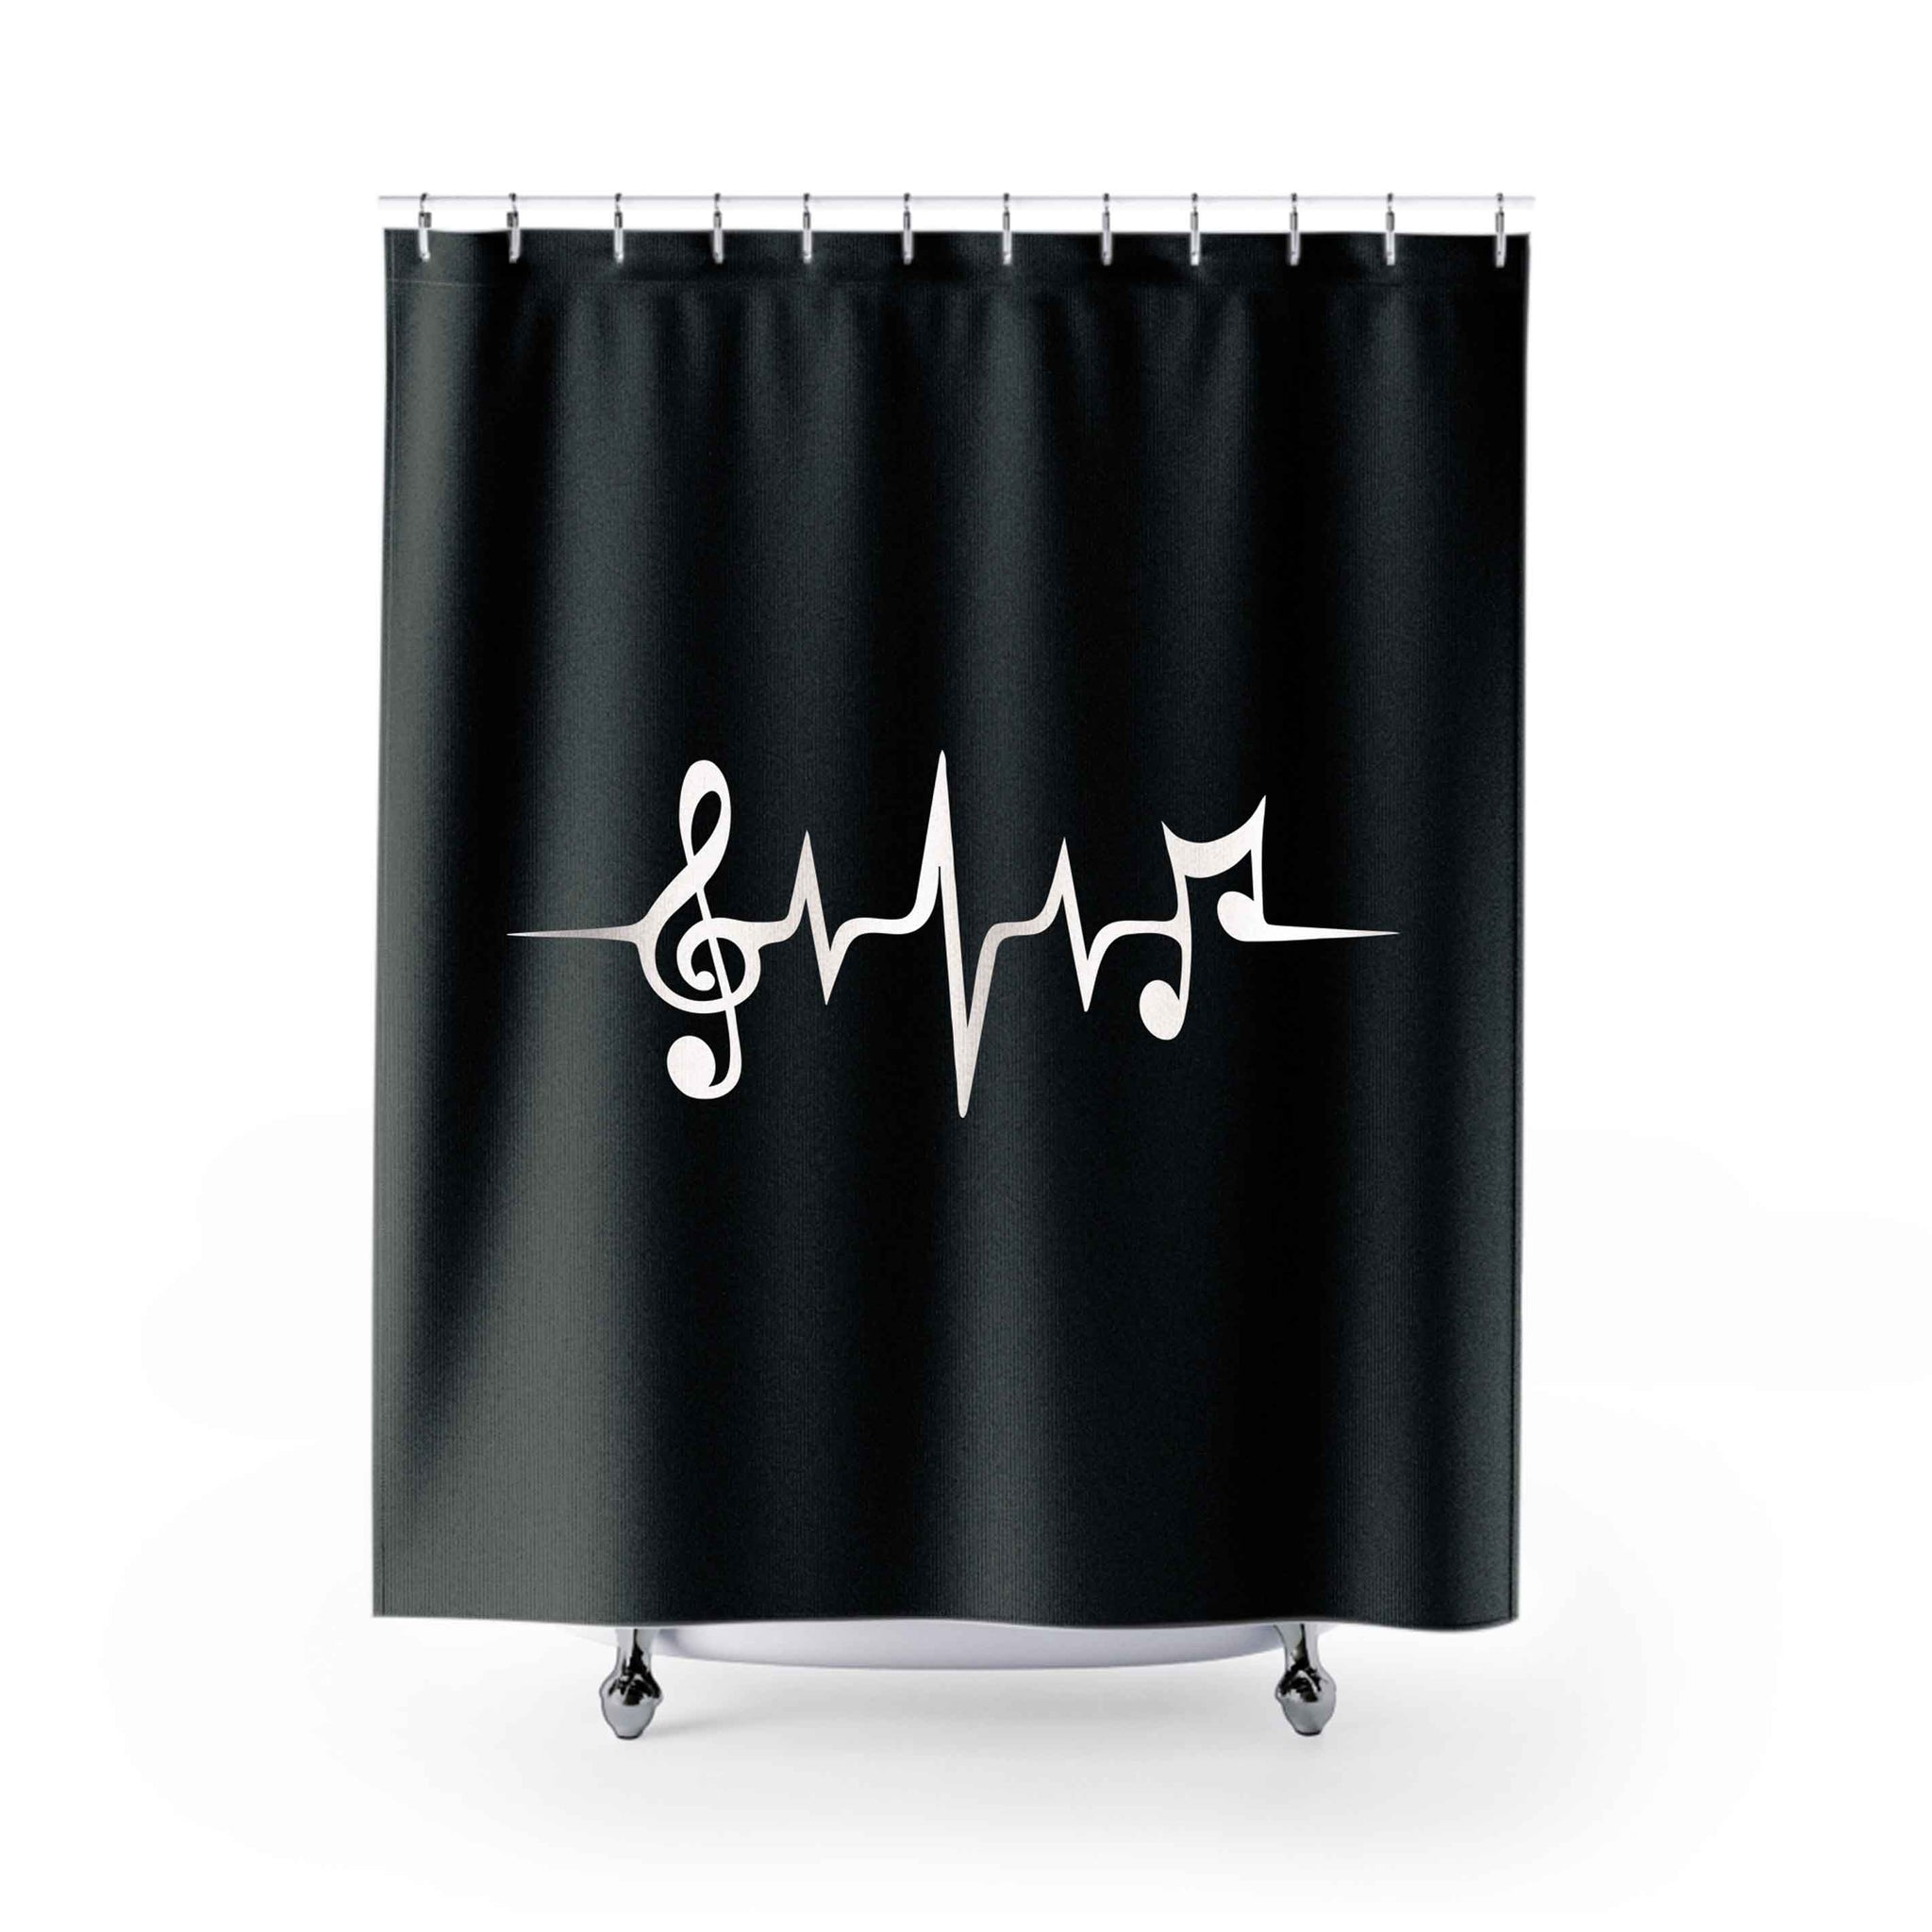 Music Pulse Notes Clef Frequency Wave Sound Dance Shower Curtains